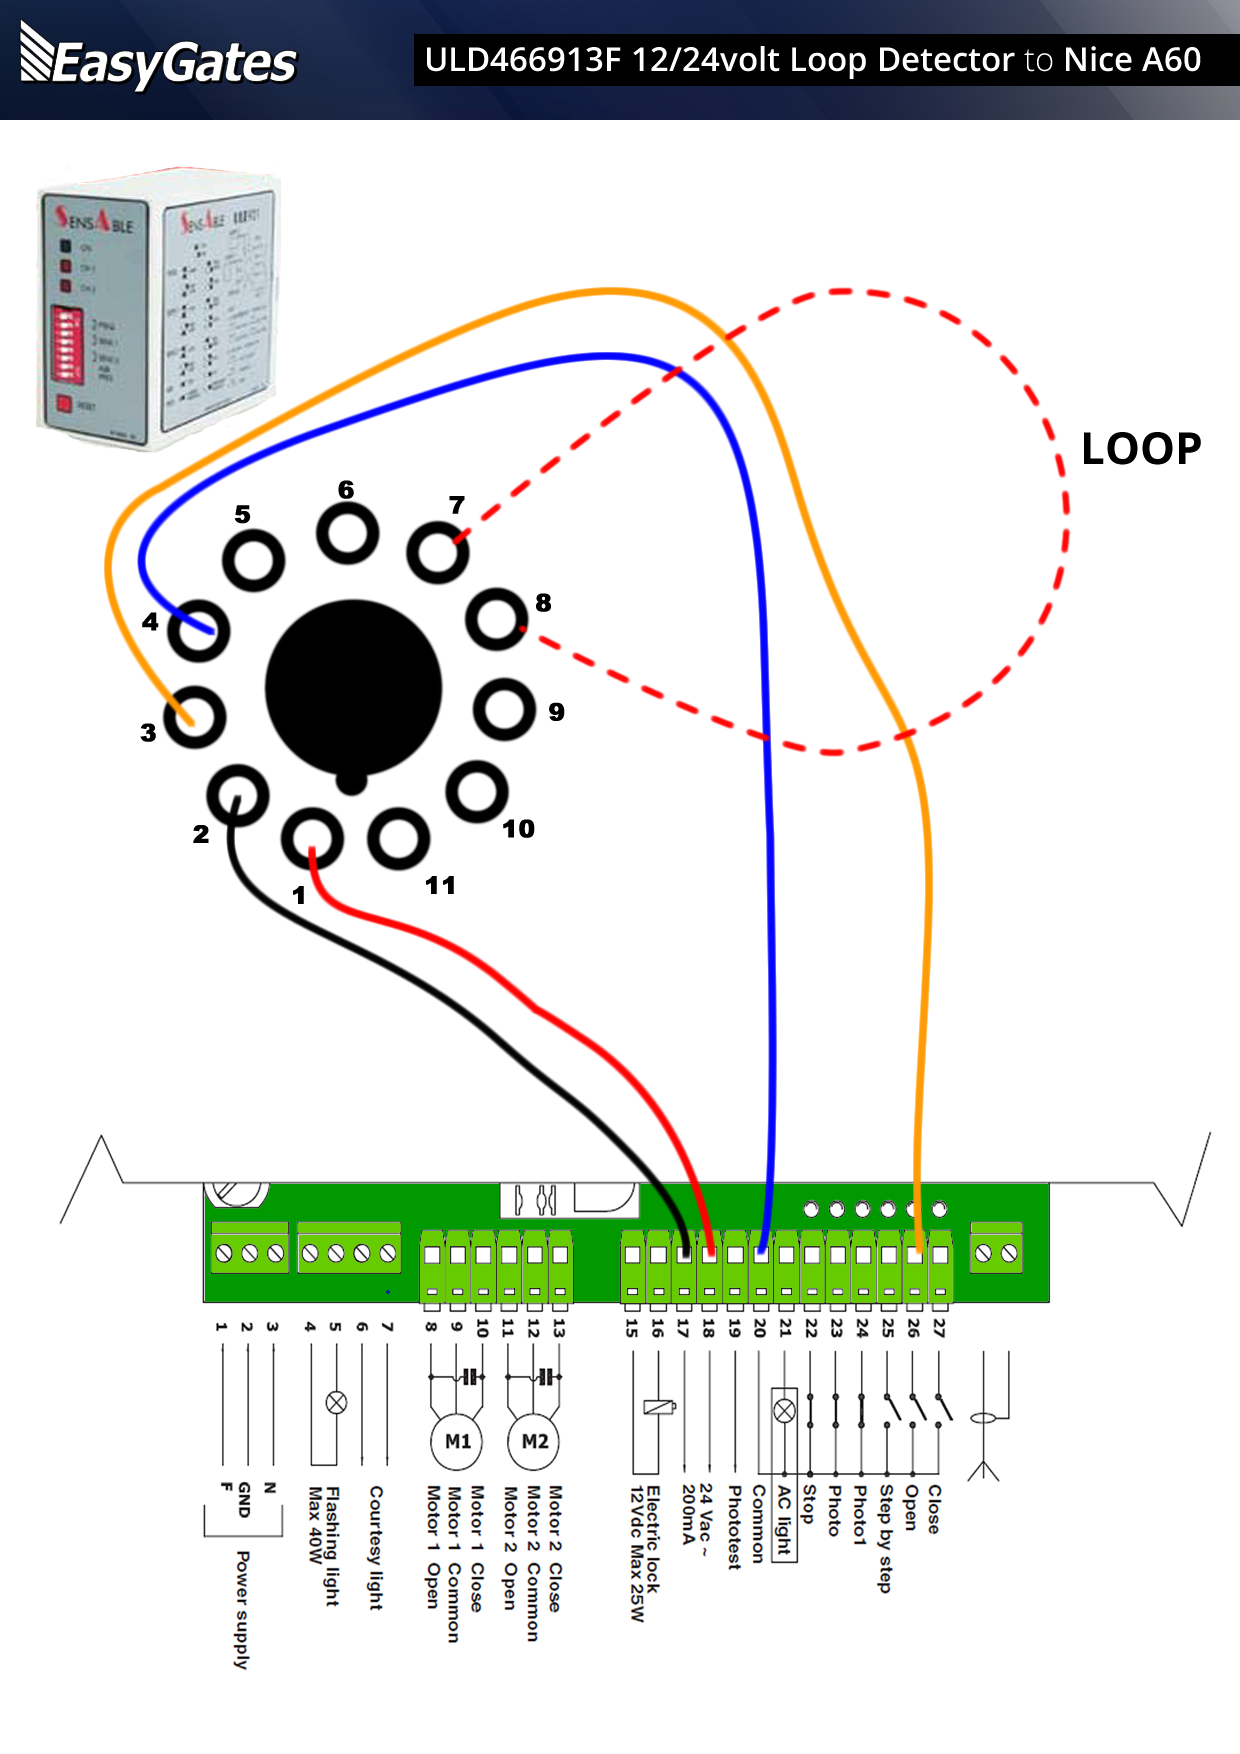 Loop Sensor Wiring Diagram Door Car Diagrams Explained Derbi Senda 12 24 Volt Detector To Nice A60 Control Board Rh Manuals Easygates Co Uk Maf